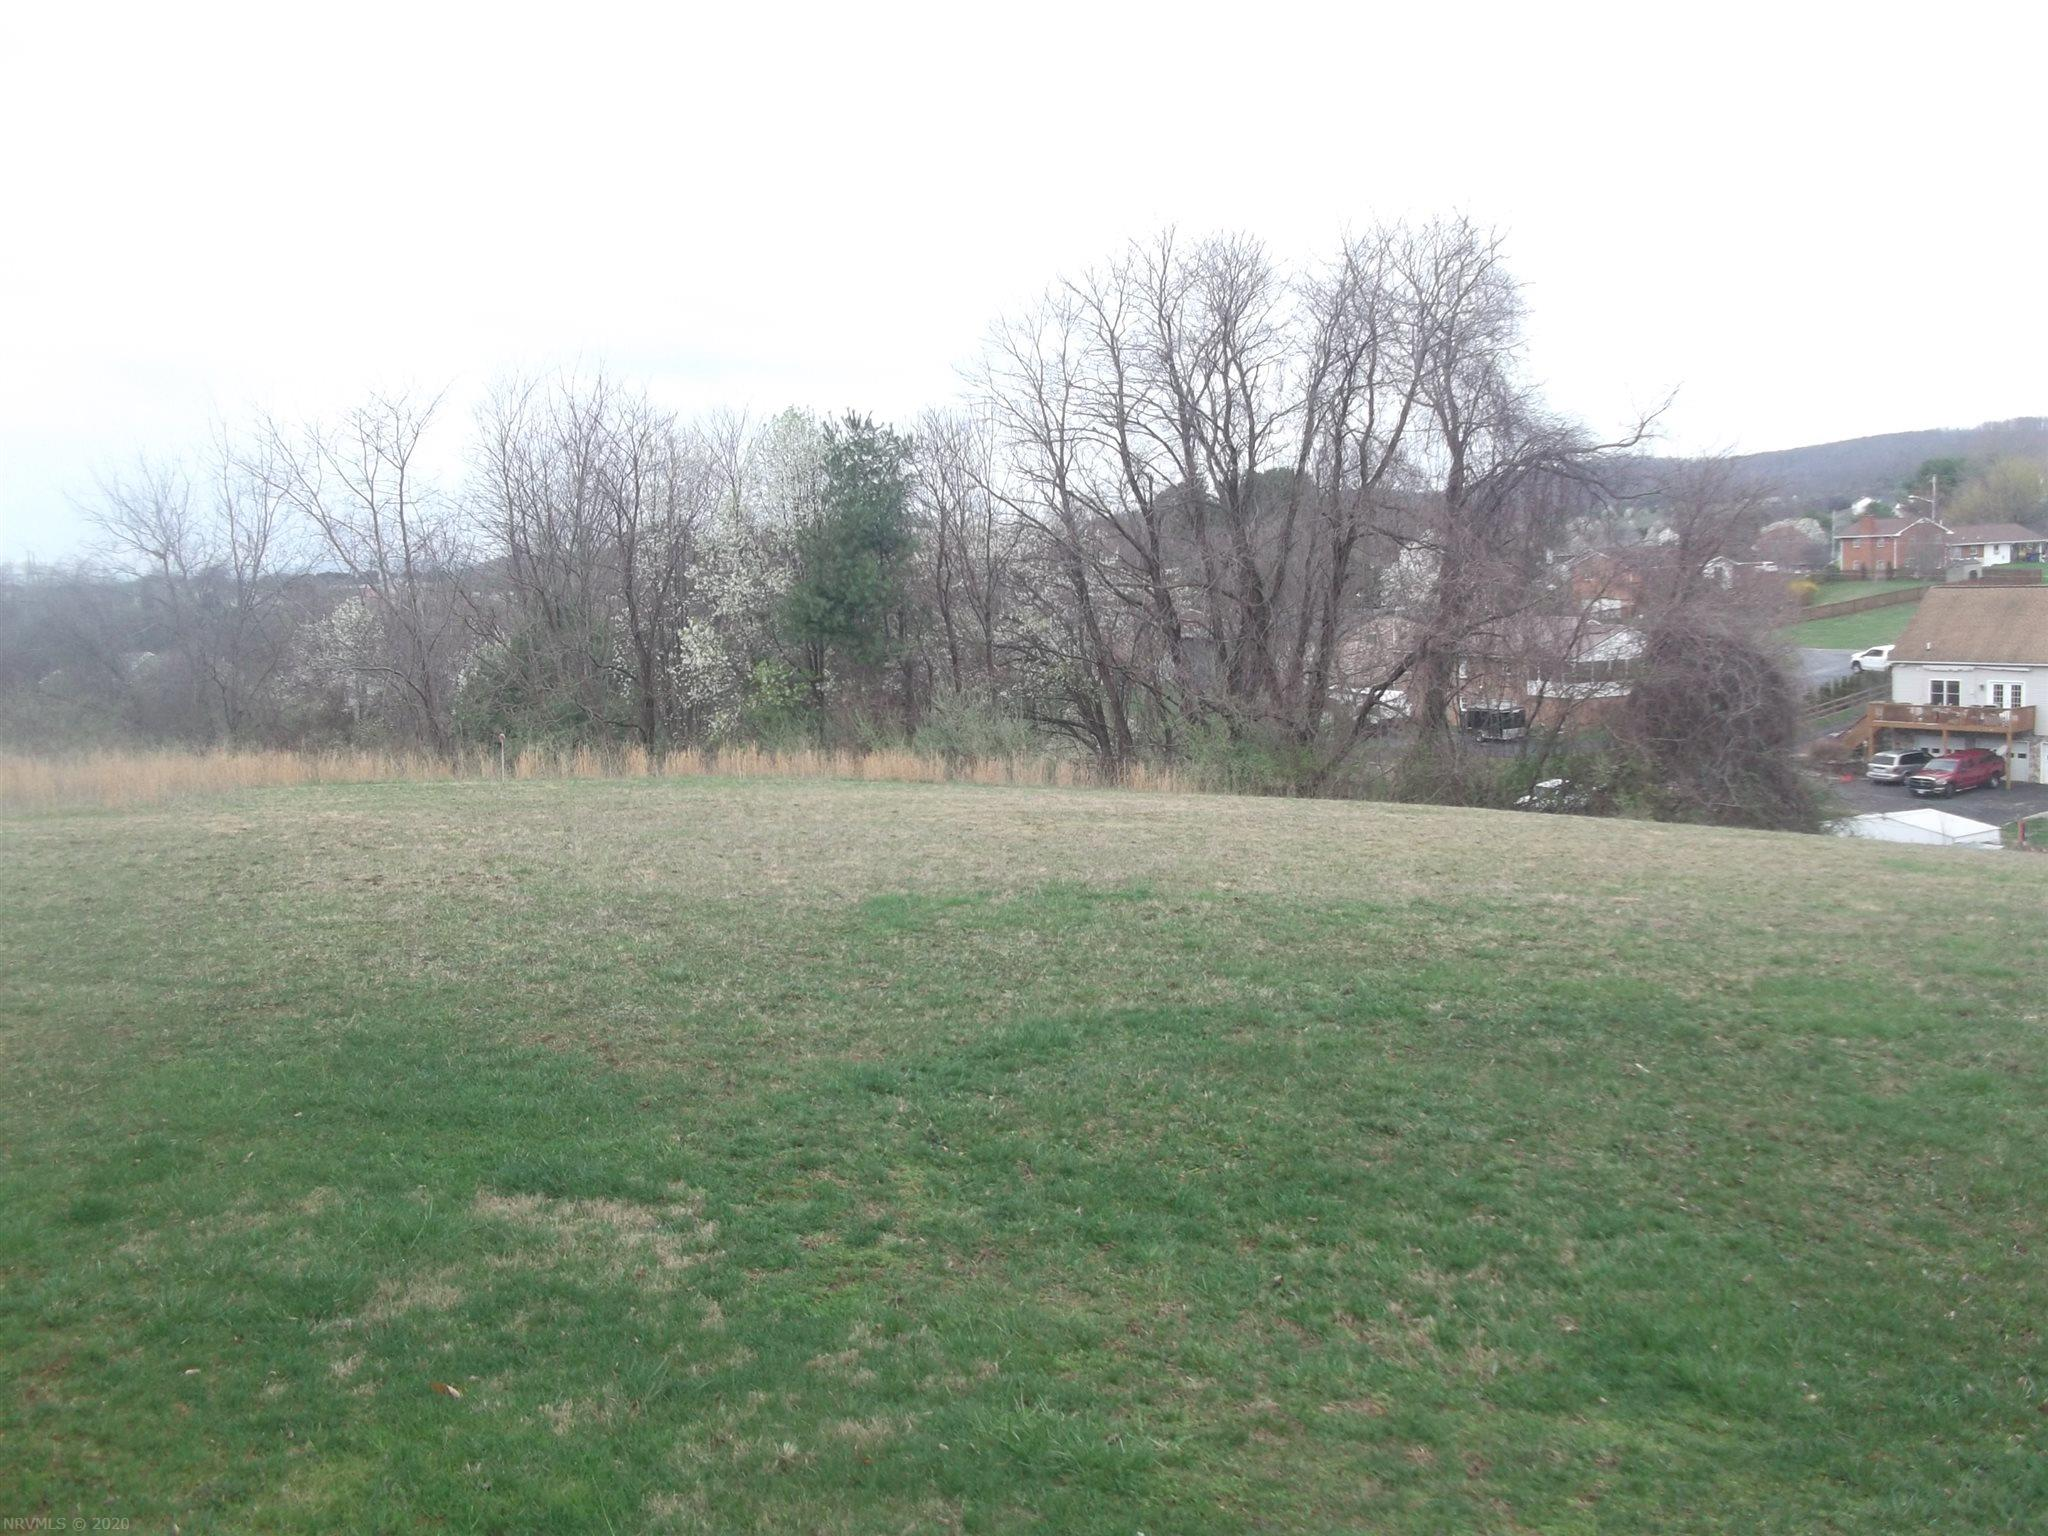 Desirable land for development in Christiansburg.  4.3 acres  with in town utilities.  Possibly could be developed into  16 lots.  Close to shopping and entertainment.